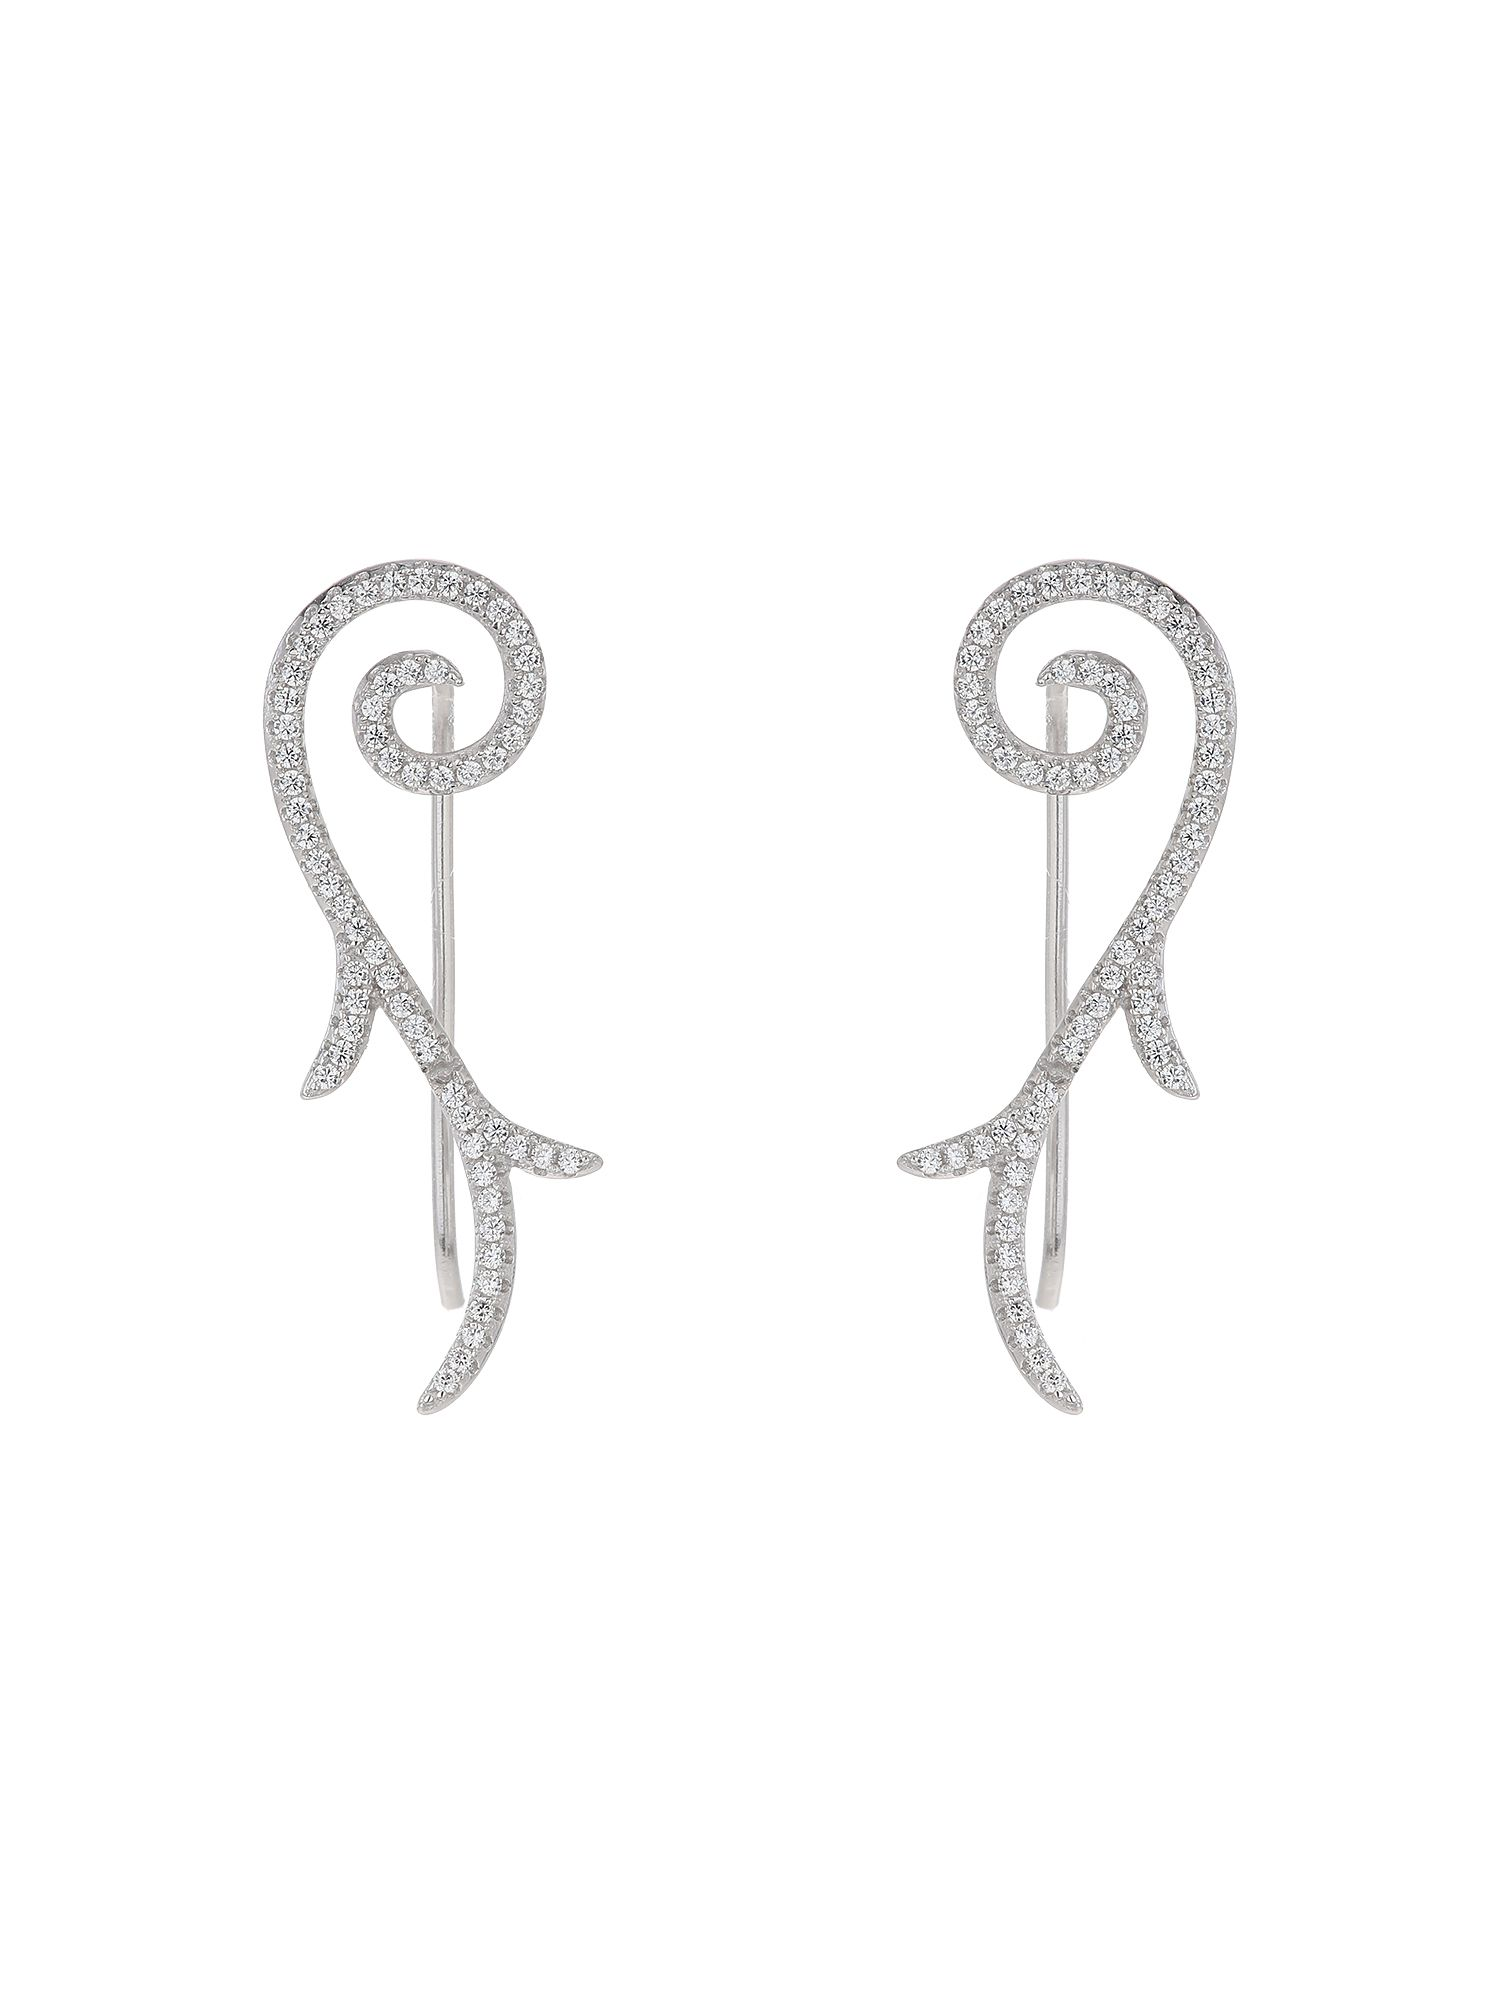 mikey sterling silver 925 filigree dropearring